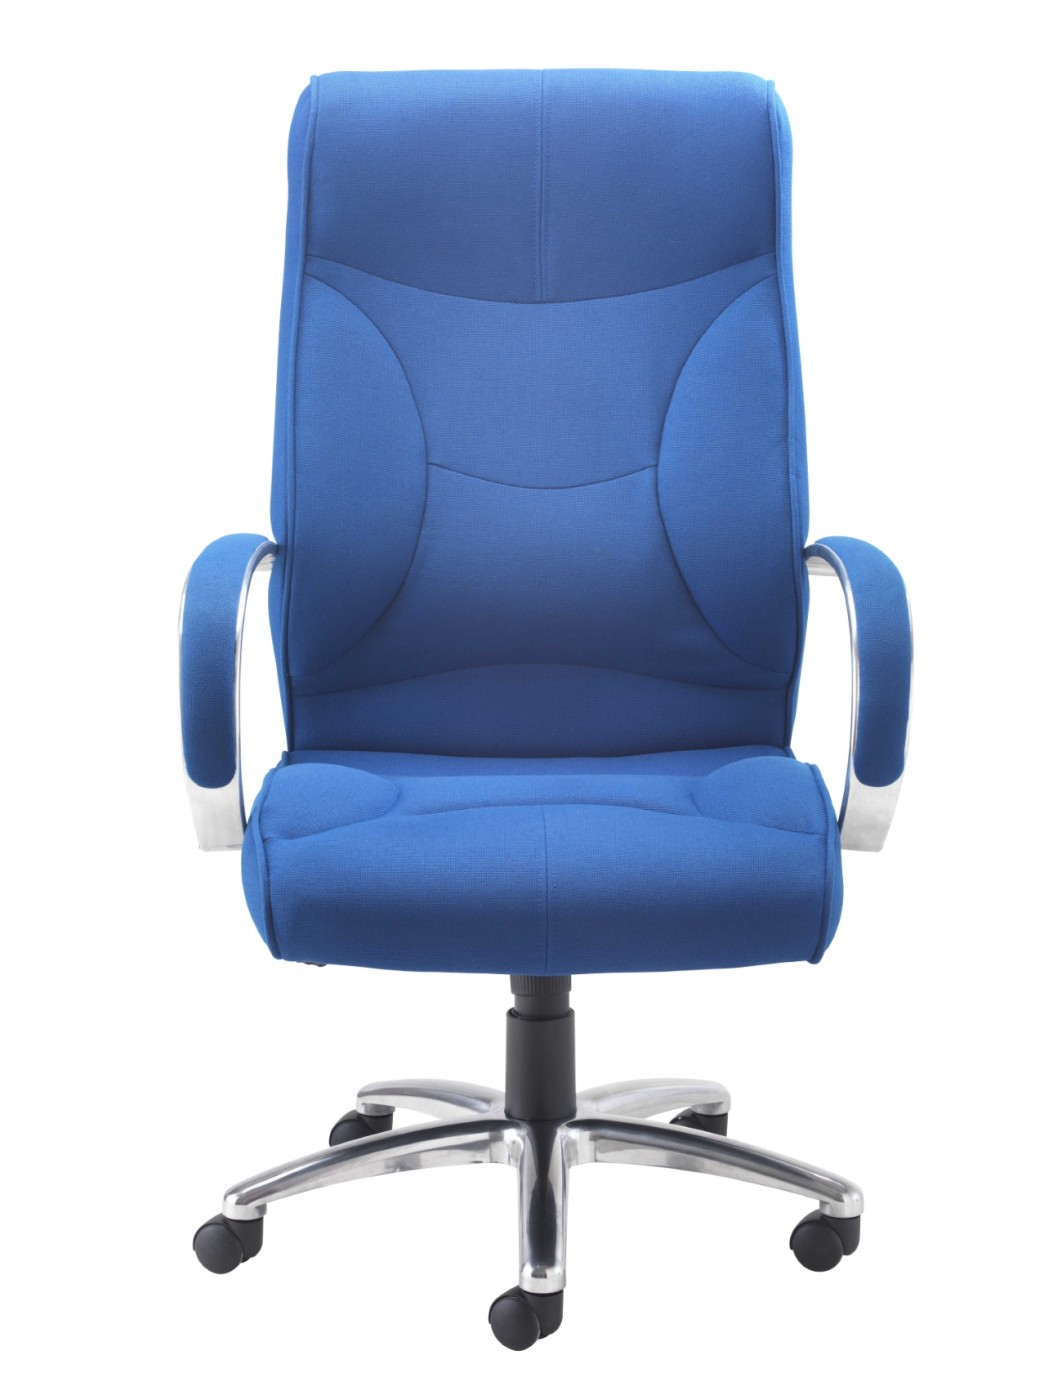 fabric office chairs uk chair pillow for bed tc whist executive